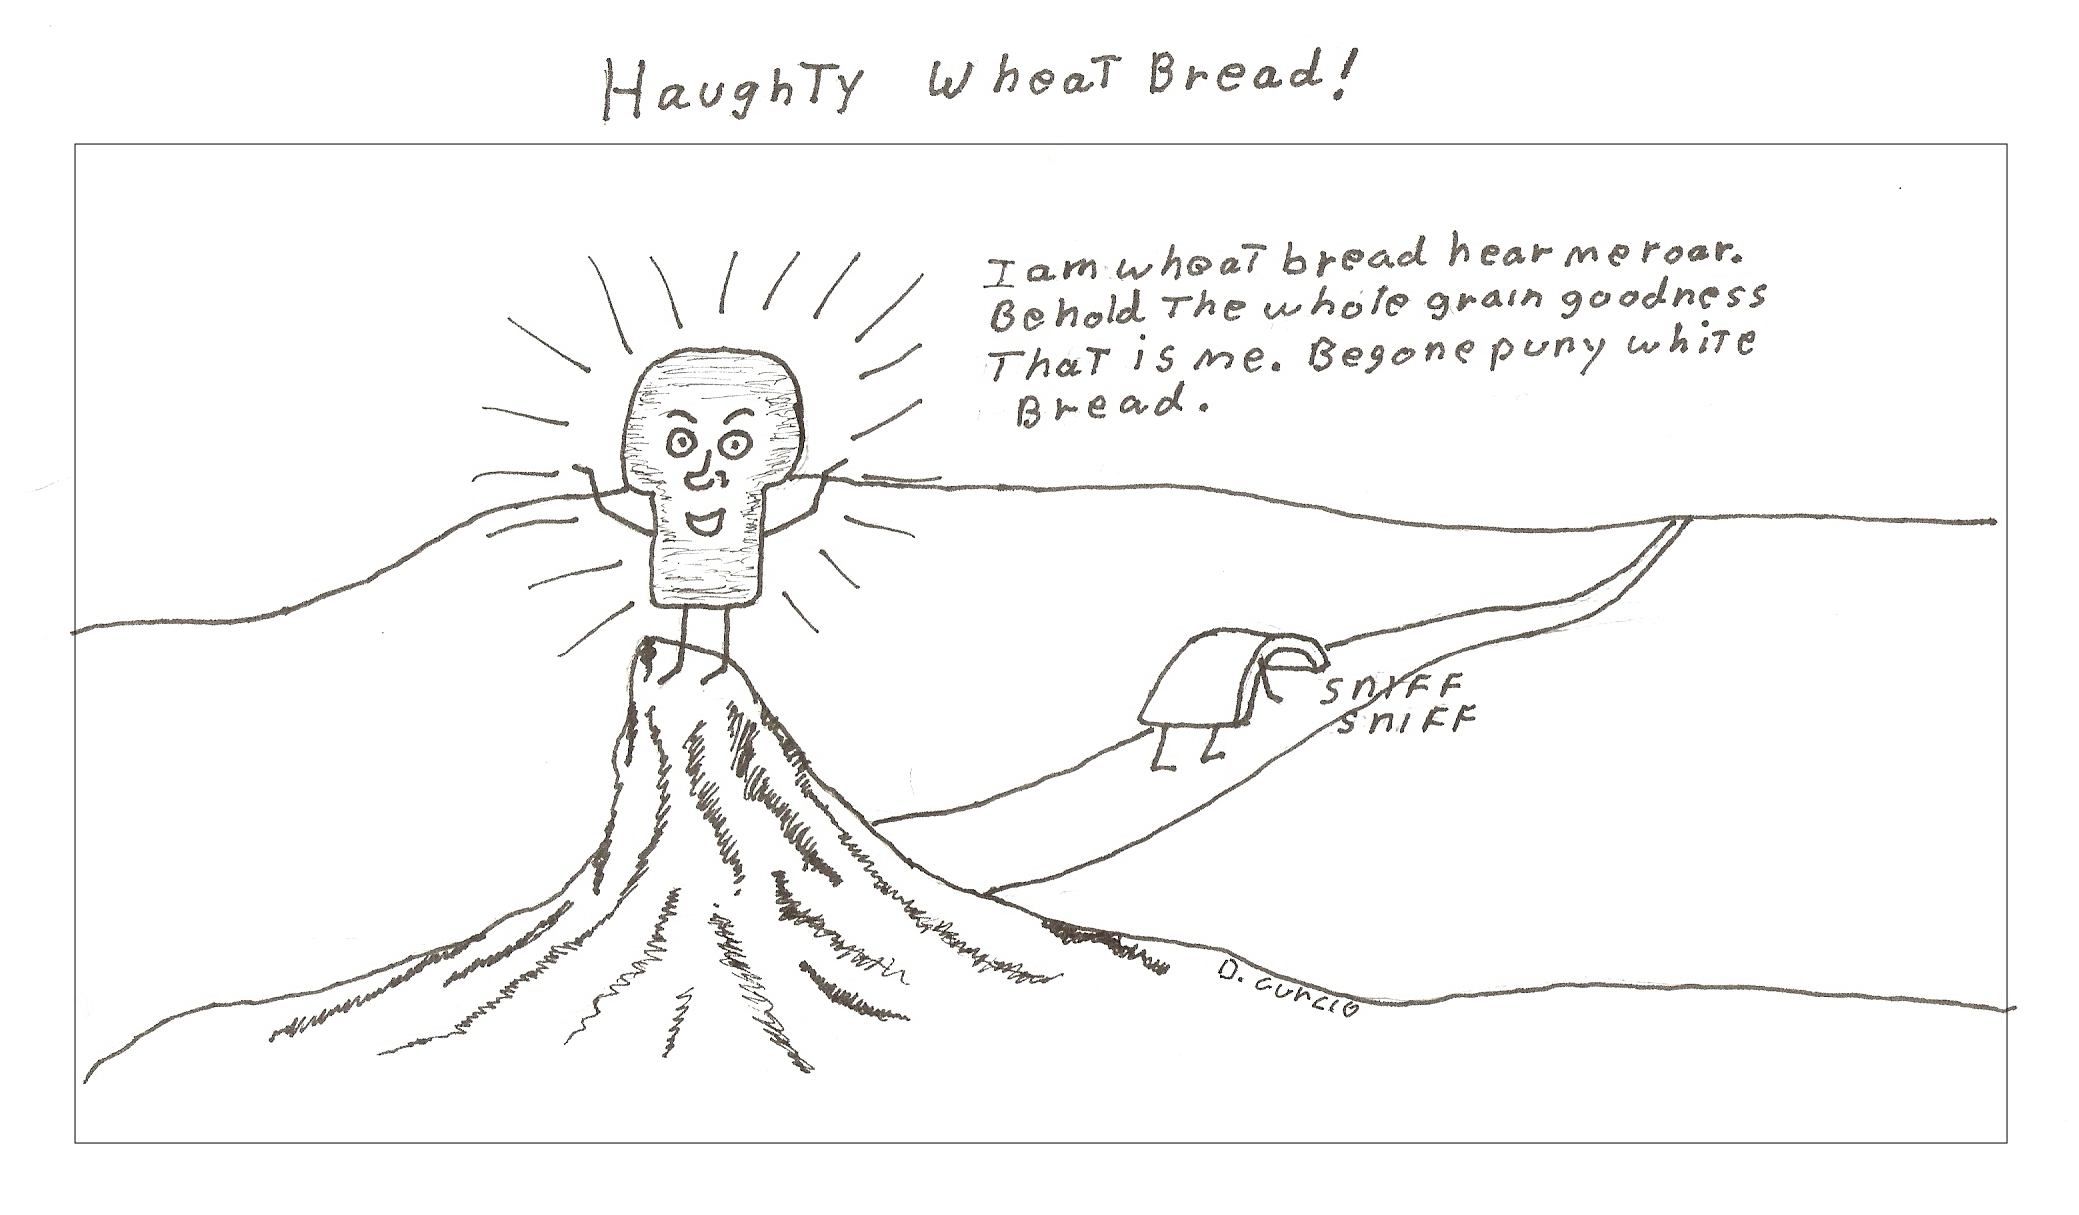 Haughty Bread